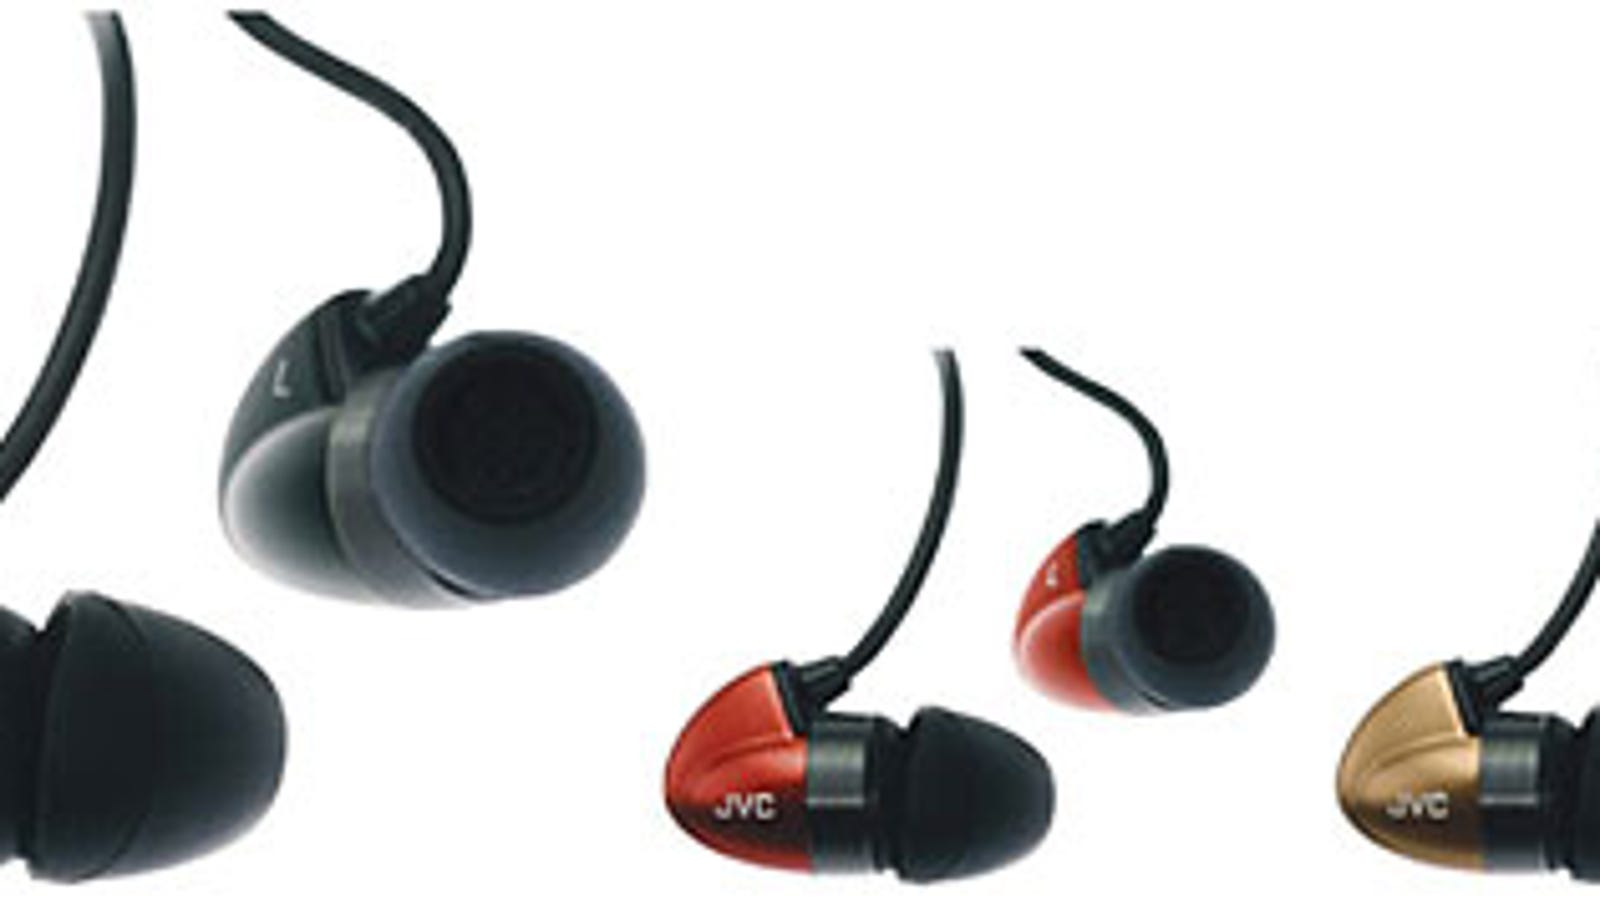 Motorola earphones with microphone - wired earphones with volume control